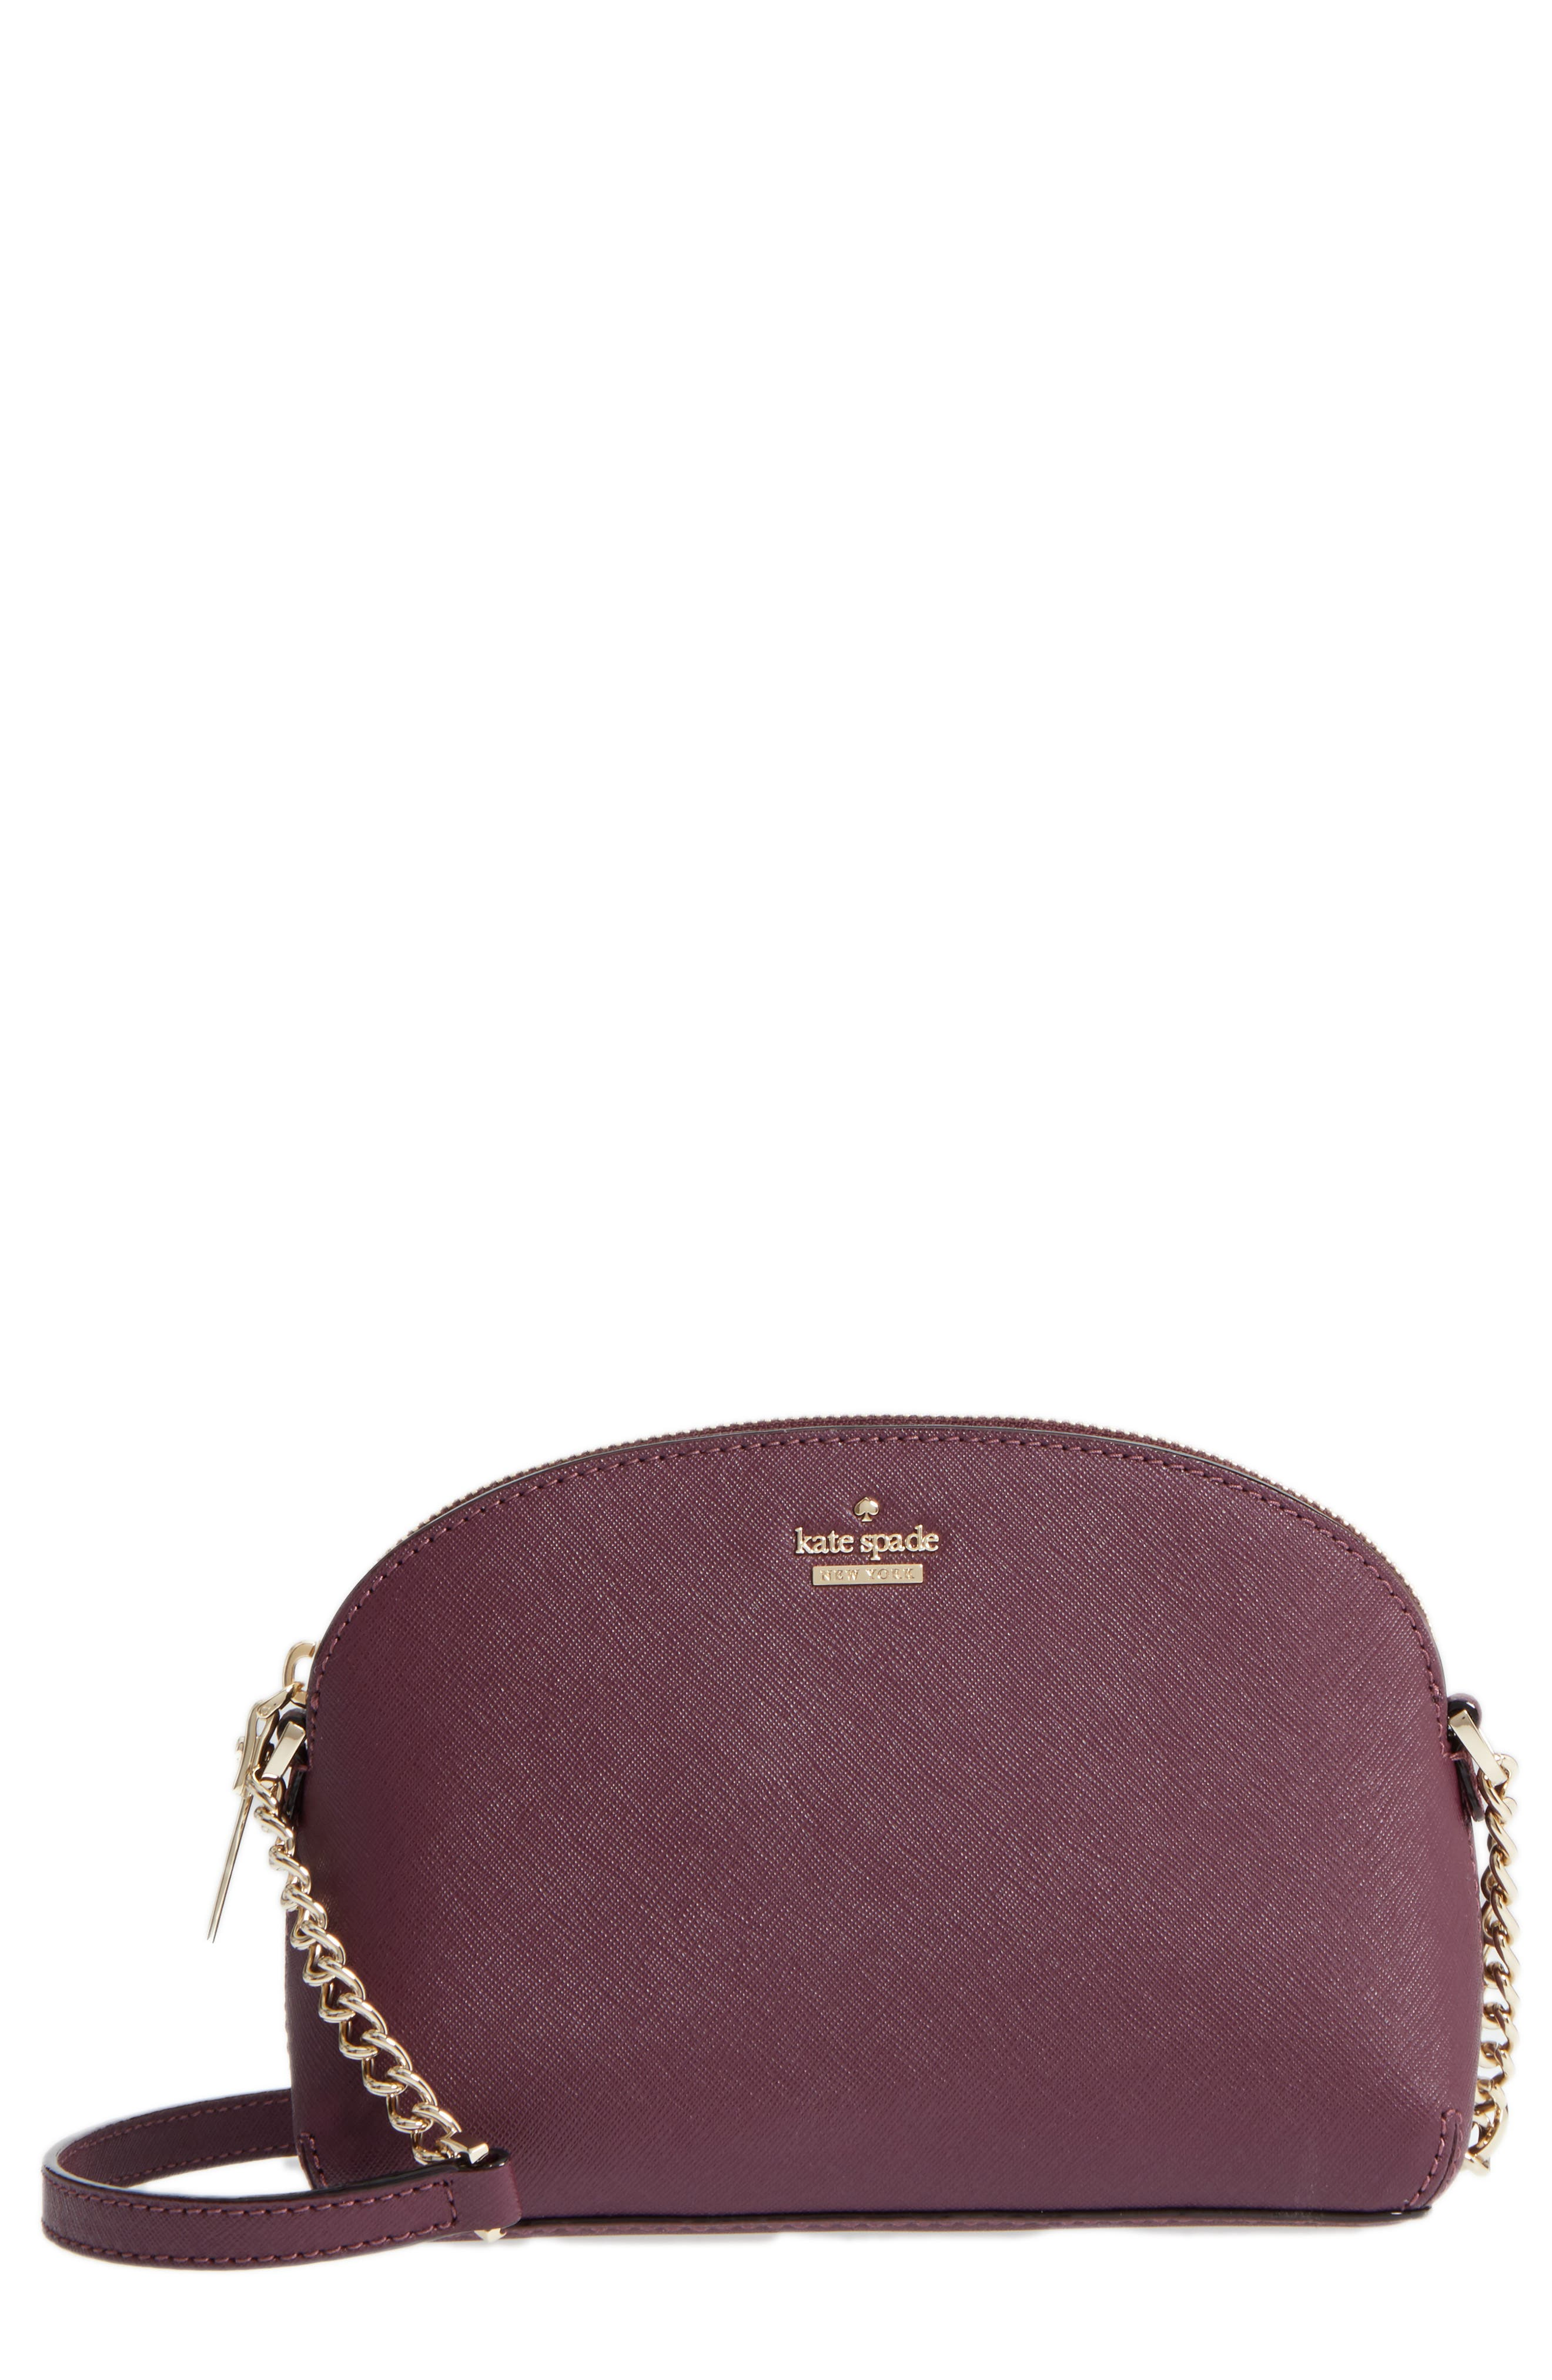 Alternate Image 1 Selected - kate spade new york cameron street - hilli leather crossbody bag